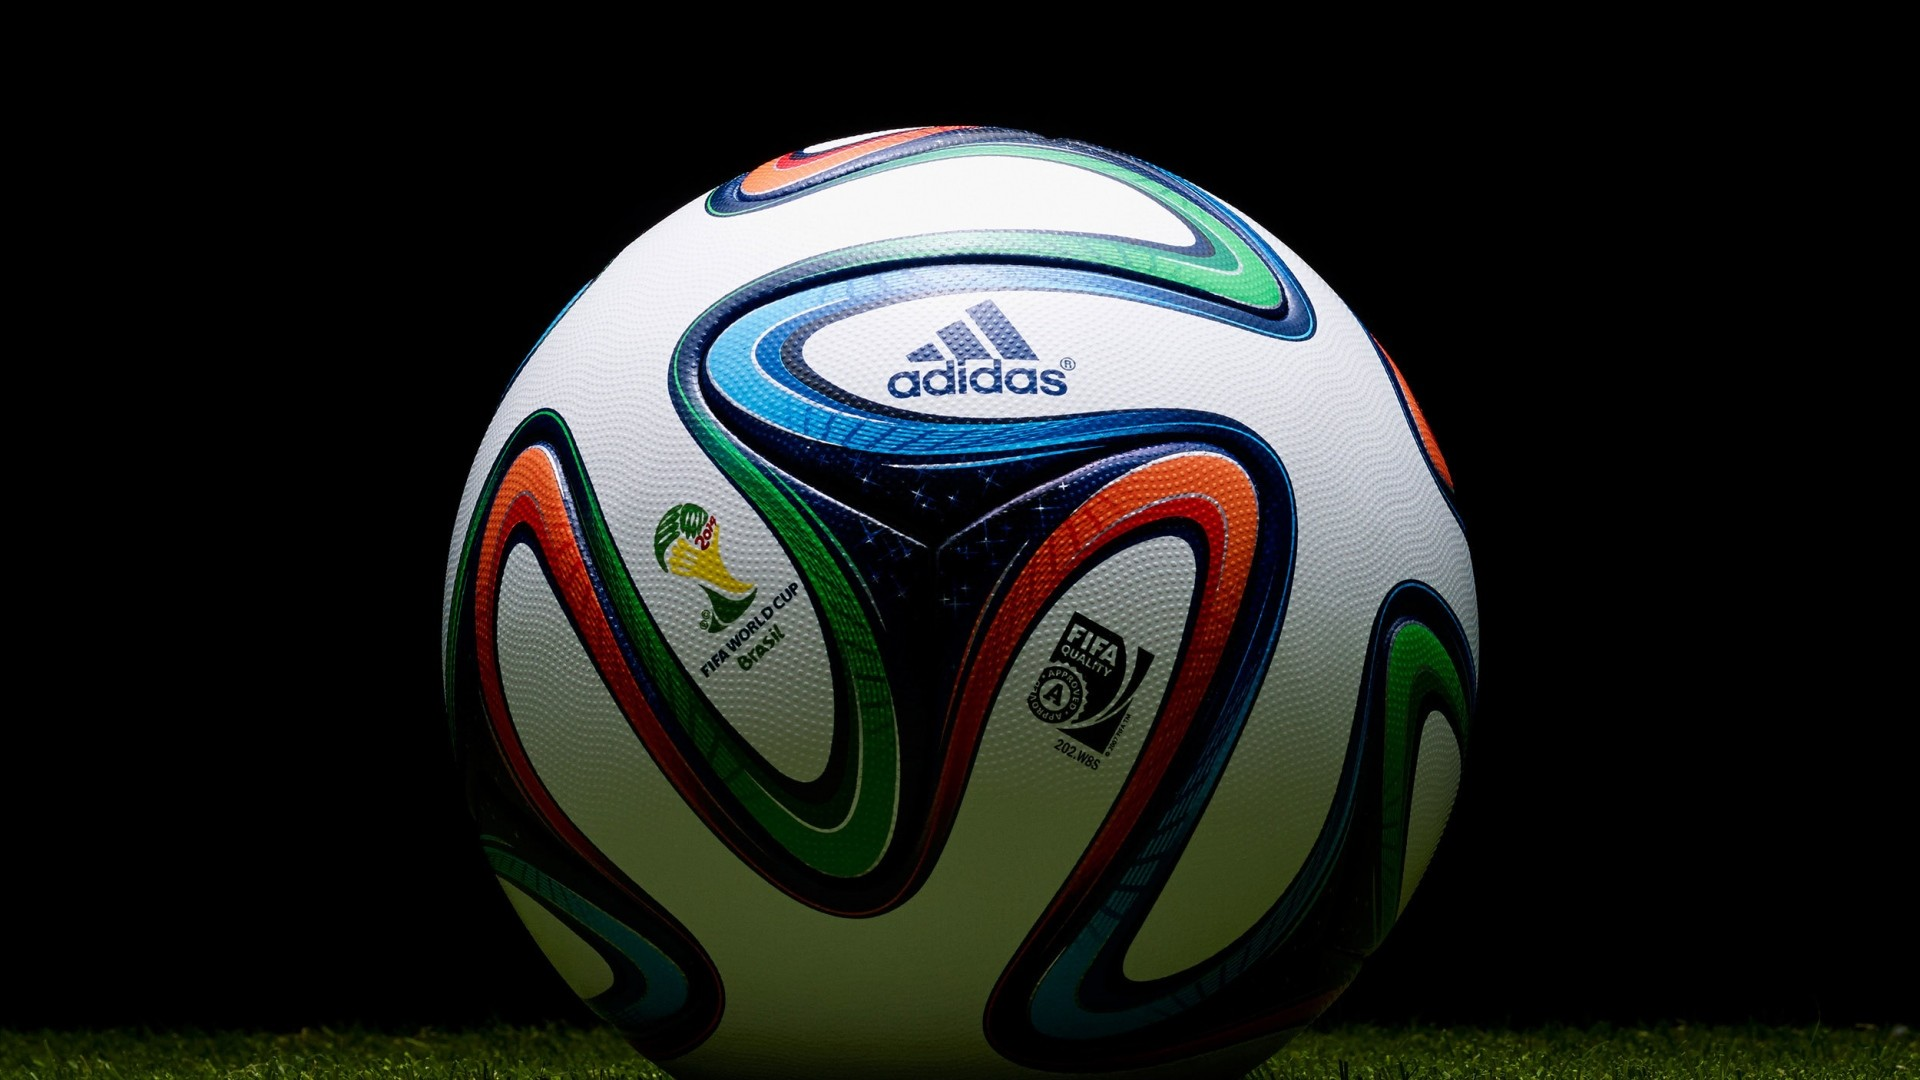 1920x1080 Preview wallpaper brazuca, 2014, world cup, adidas, ball, football